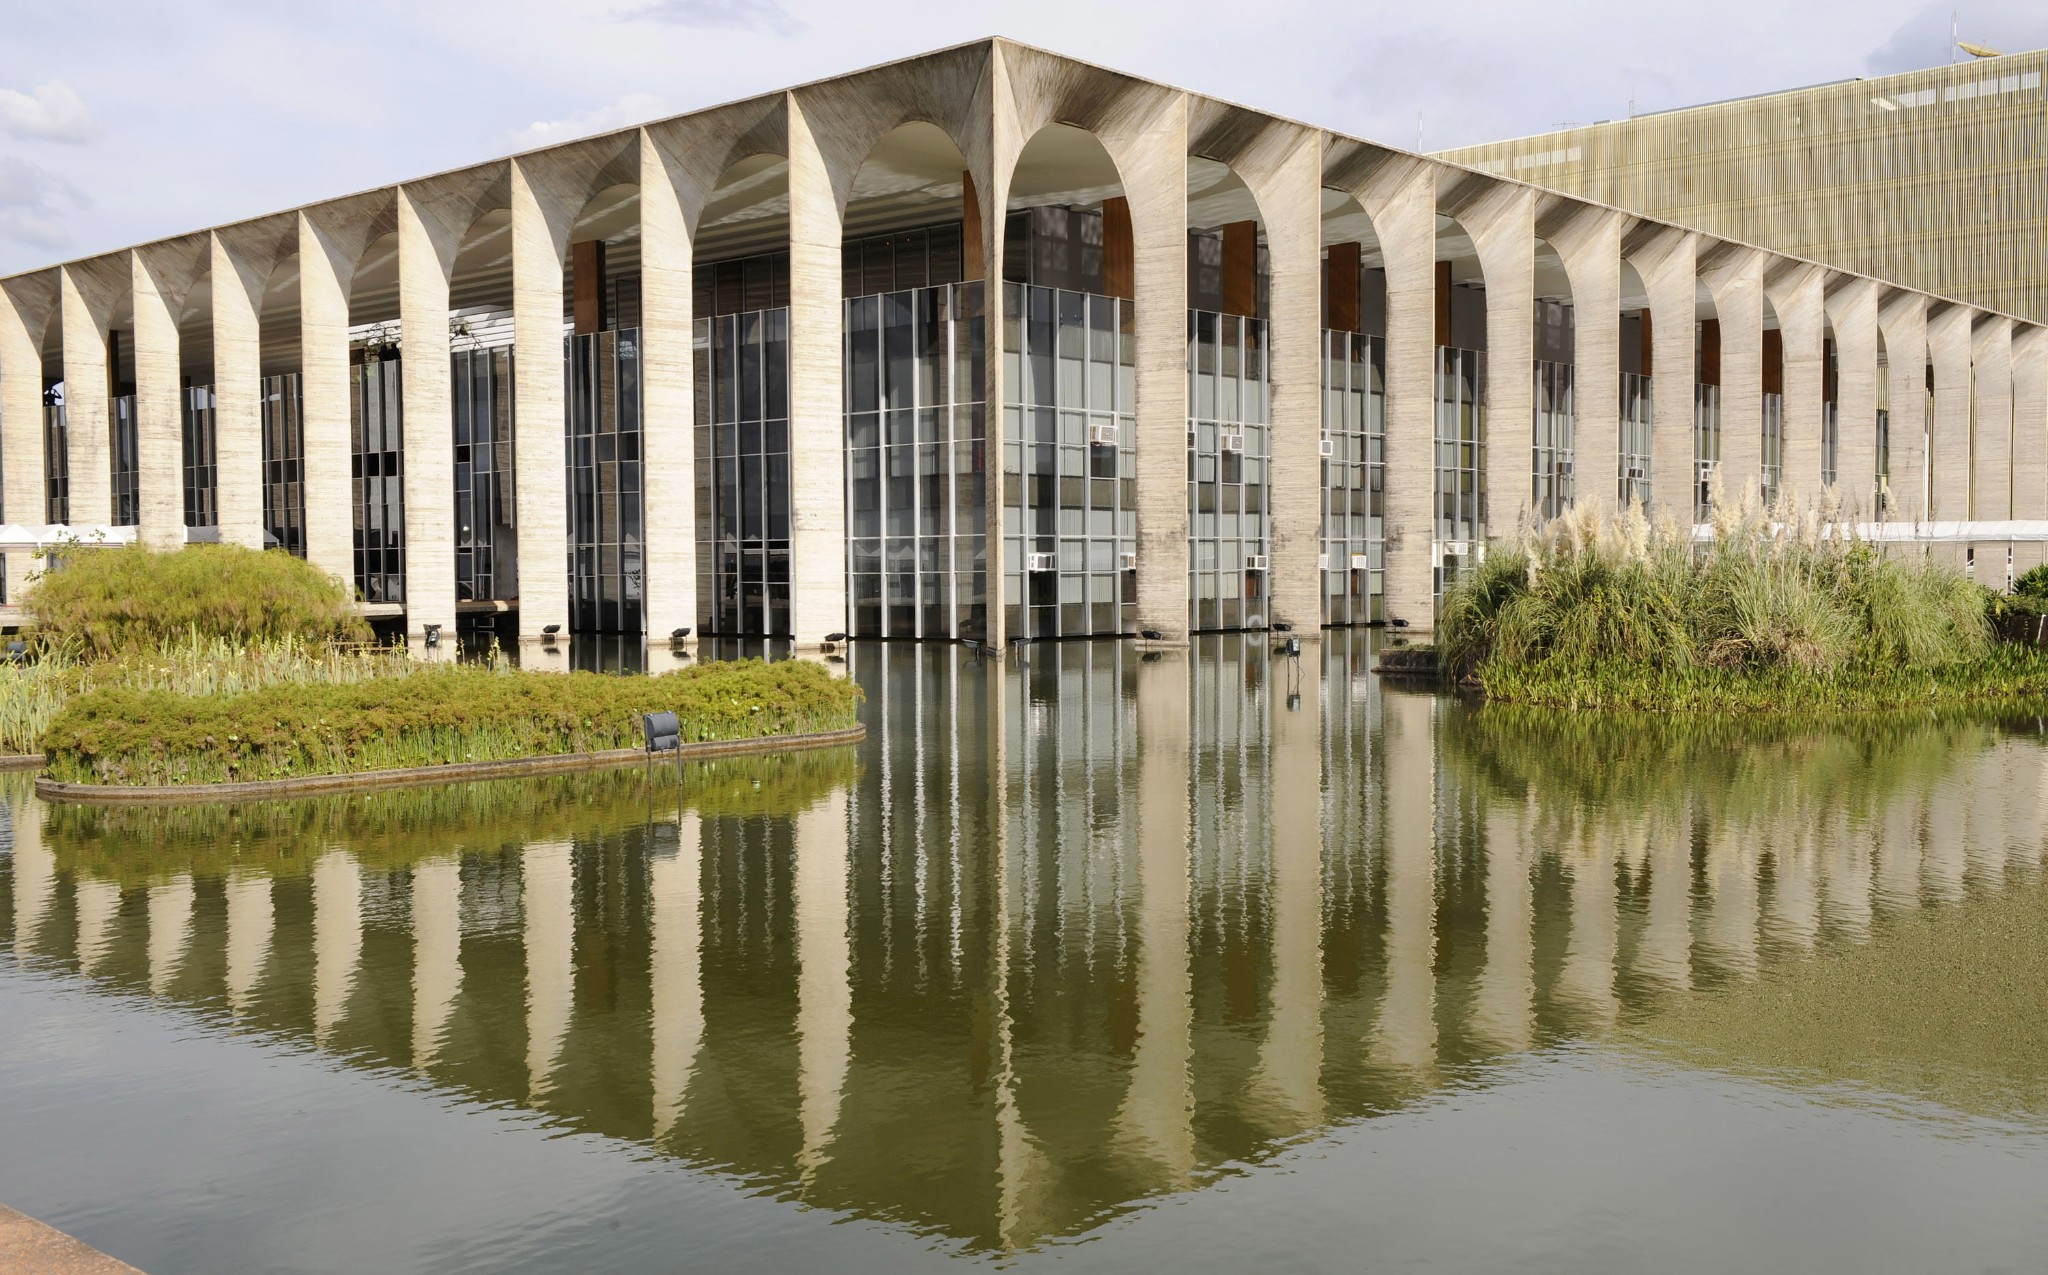 Photo: The Brazilian Foreign Ministry is pictured in Brasilia on May 14, 2008. The building was designed by Brazilian architect Oscar Niemeyer. AFP PHOTO MICHAEL KAPPELER (Photo credit should read MICHAEL KAPPELER/AFP/Getty Images)